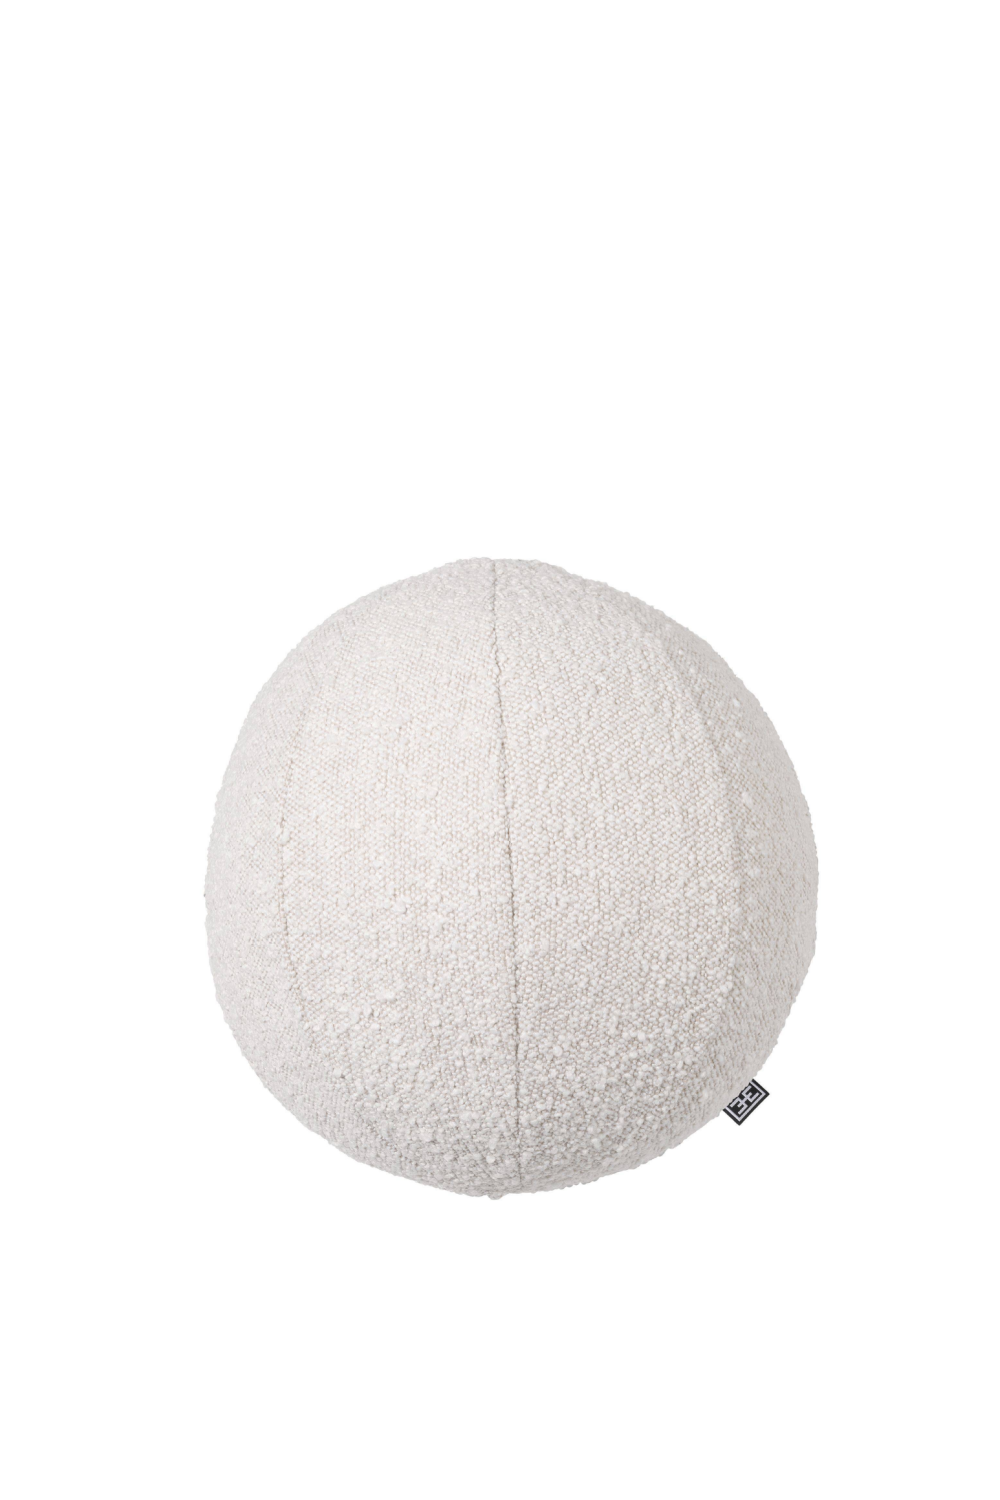 Boucle Cream Ball Shaped Pillow - Eichholtz Palla S | OROA